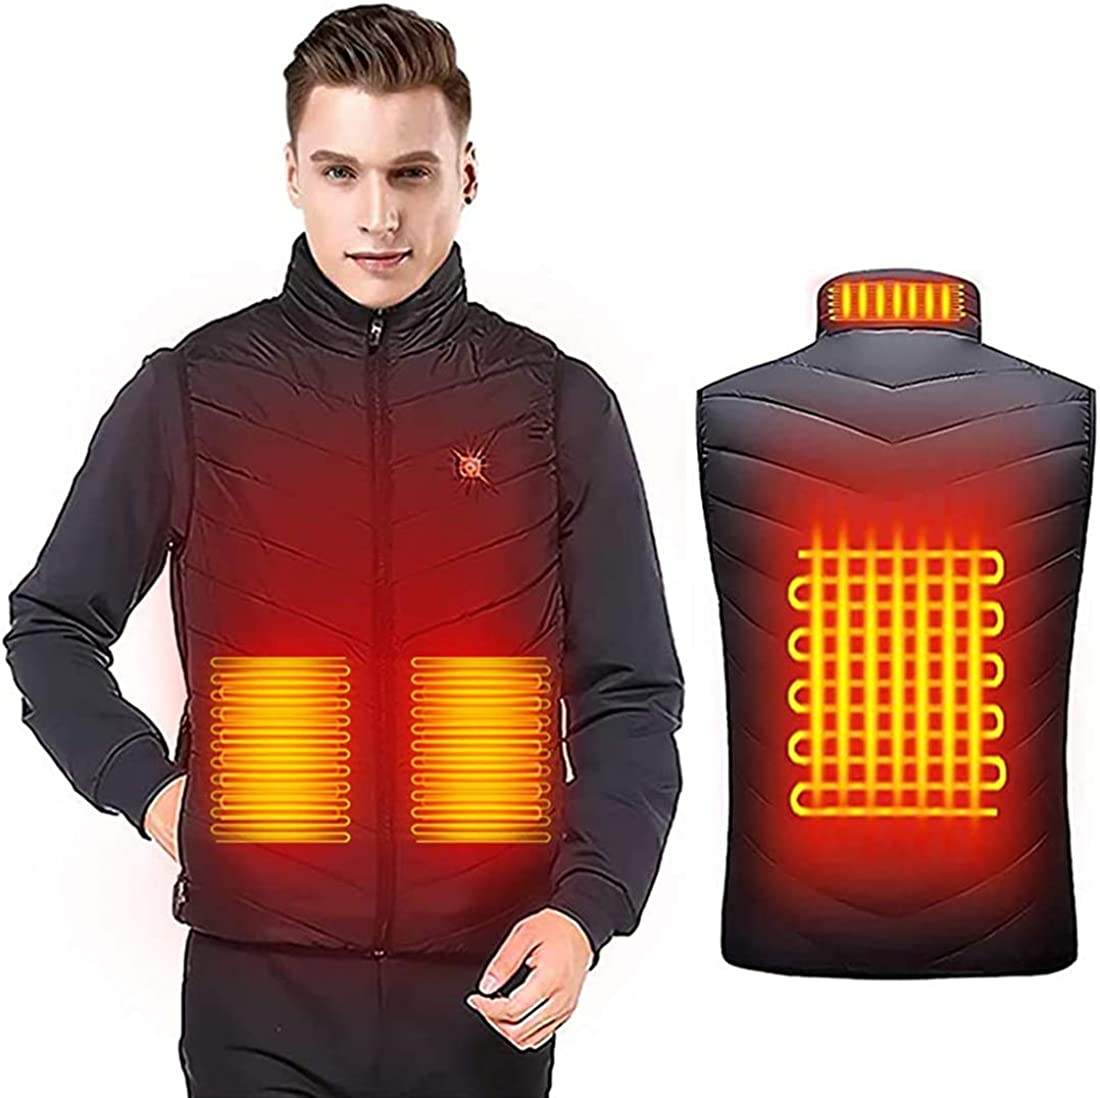 Dacgua Heated Vest for Men Women - USB Rechargeable Unisex Washable Heating Jacket Gilet (No Battery)